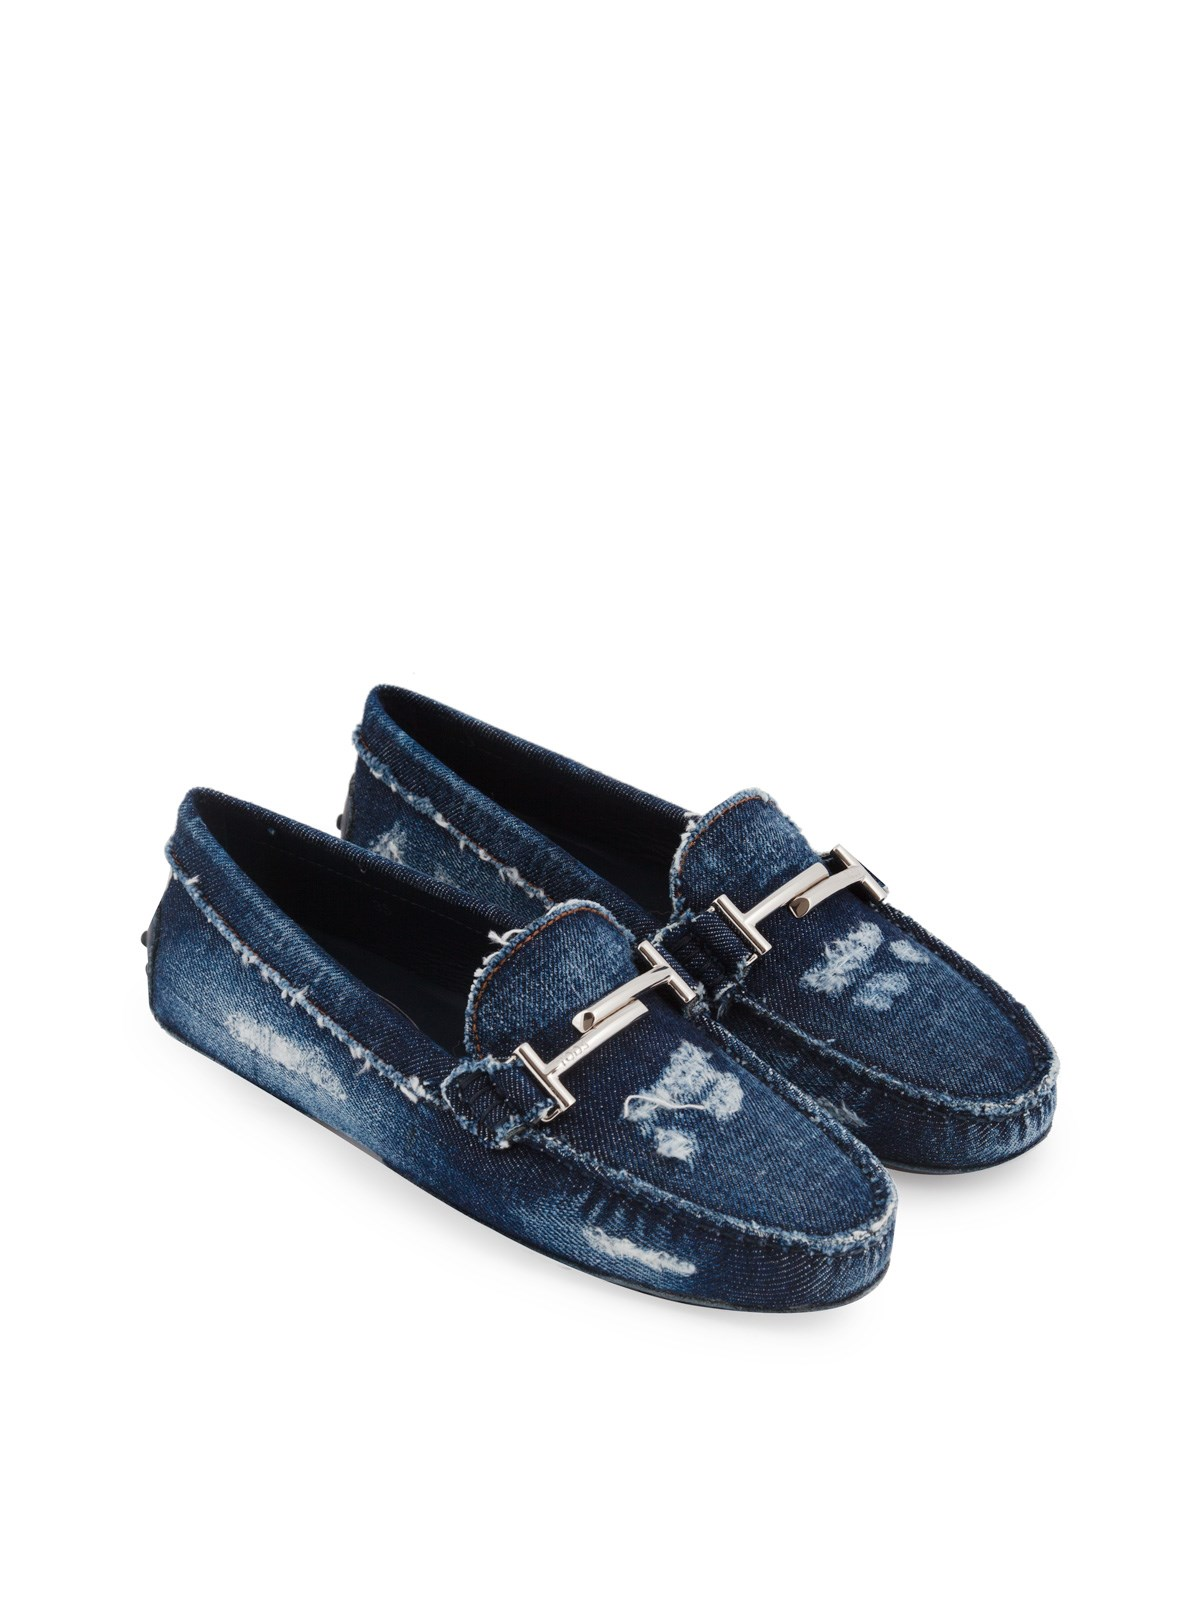 Loafers in Denim Tod's knROu